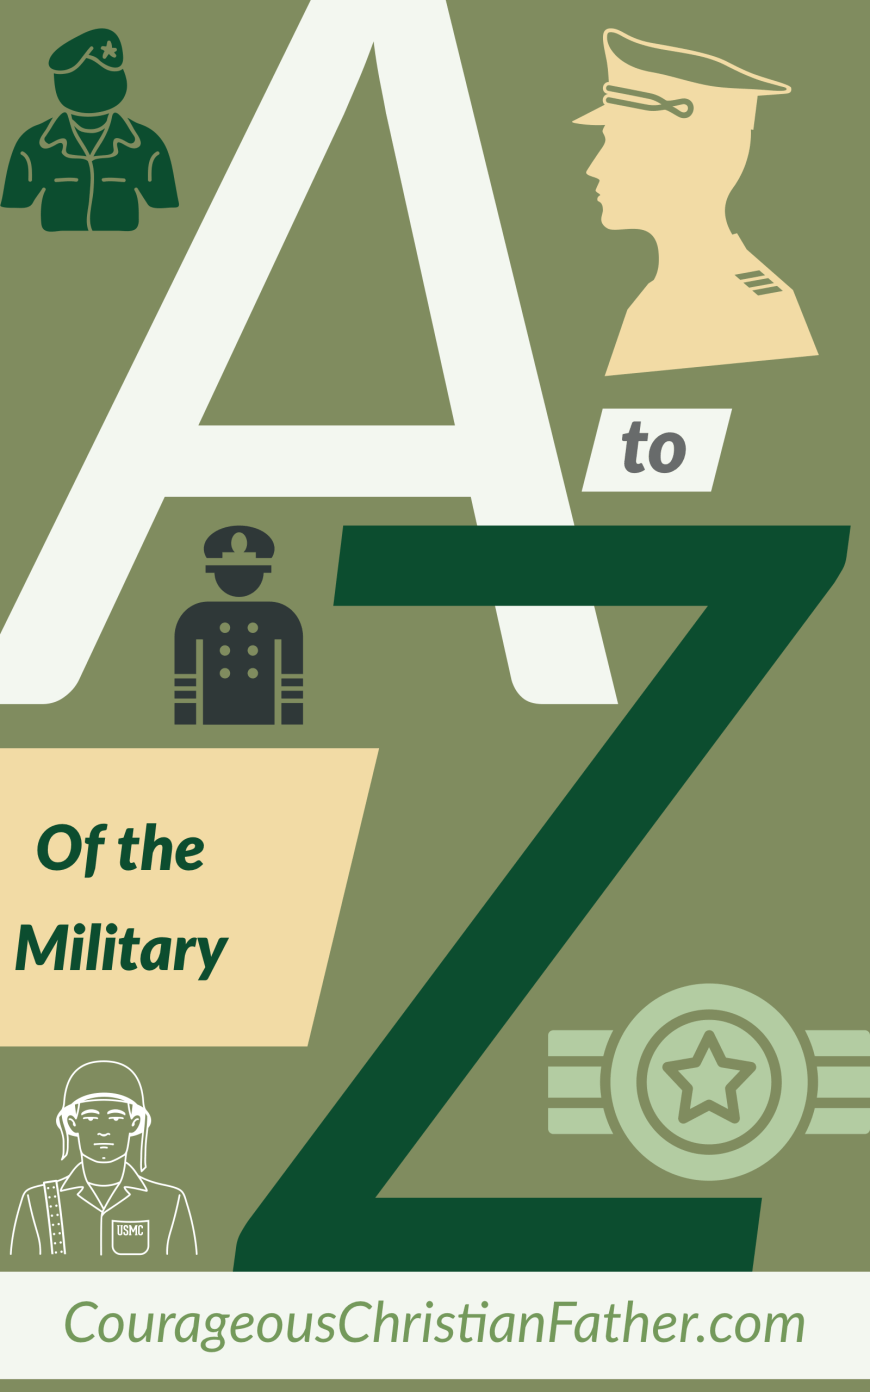 A-Z of the Military - I take each letter of the alphabet from A all the way to Z that pertains to the military. #Military